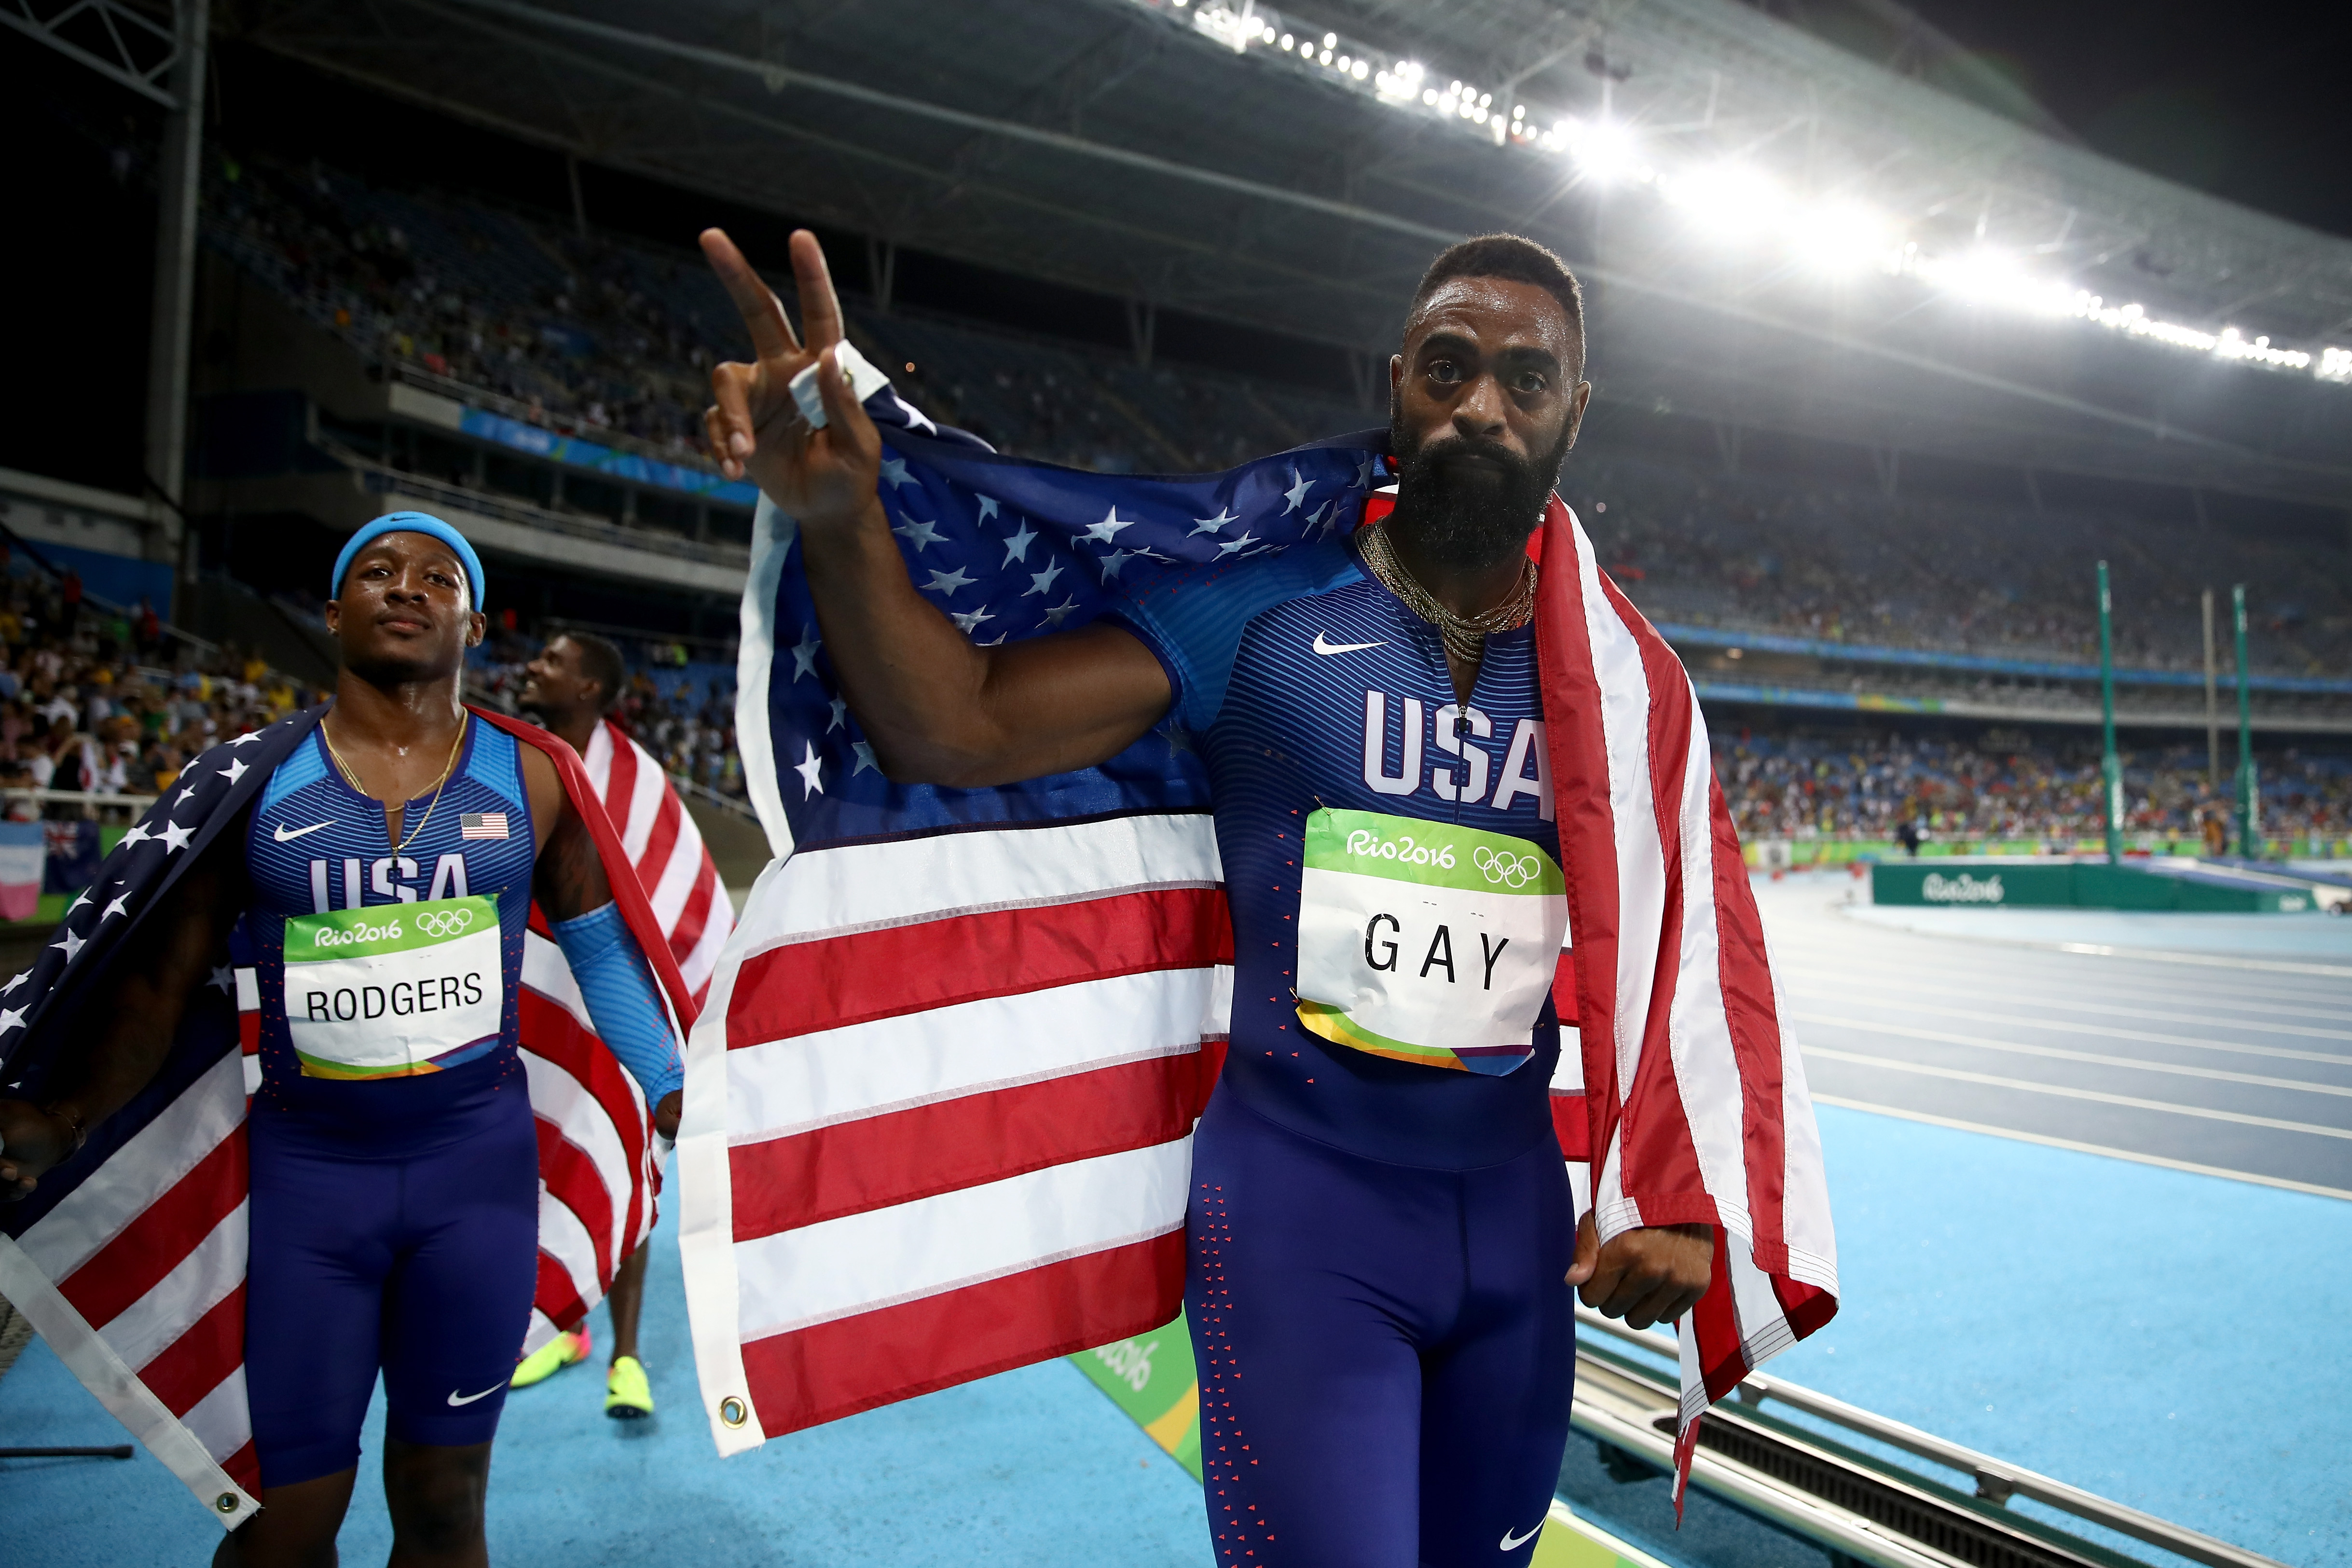 Sprinter Tyson Gay Fails Dope Test, Pulls Out Of World Championships